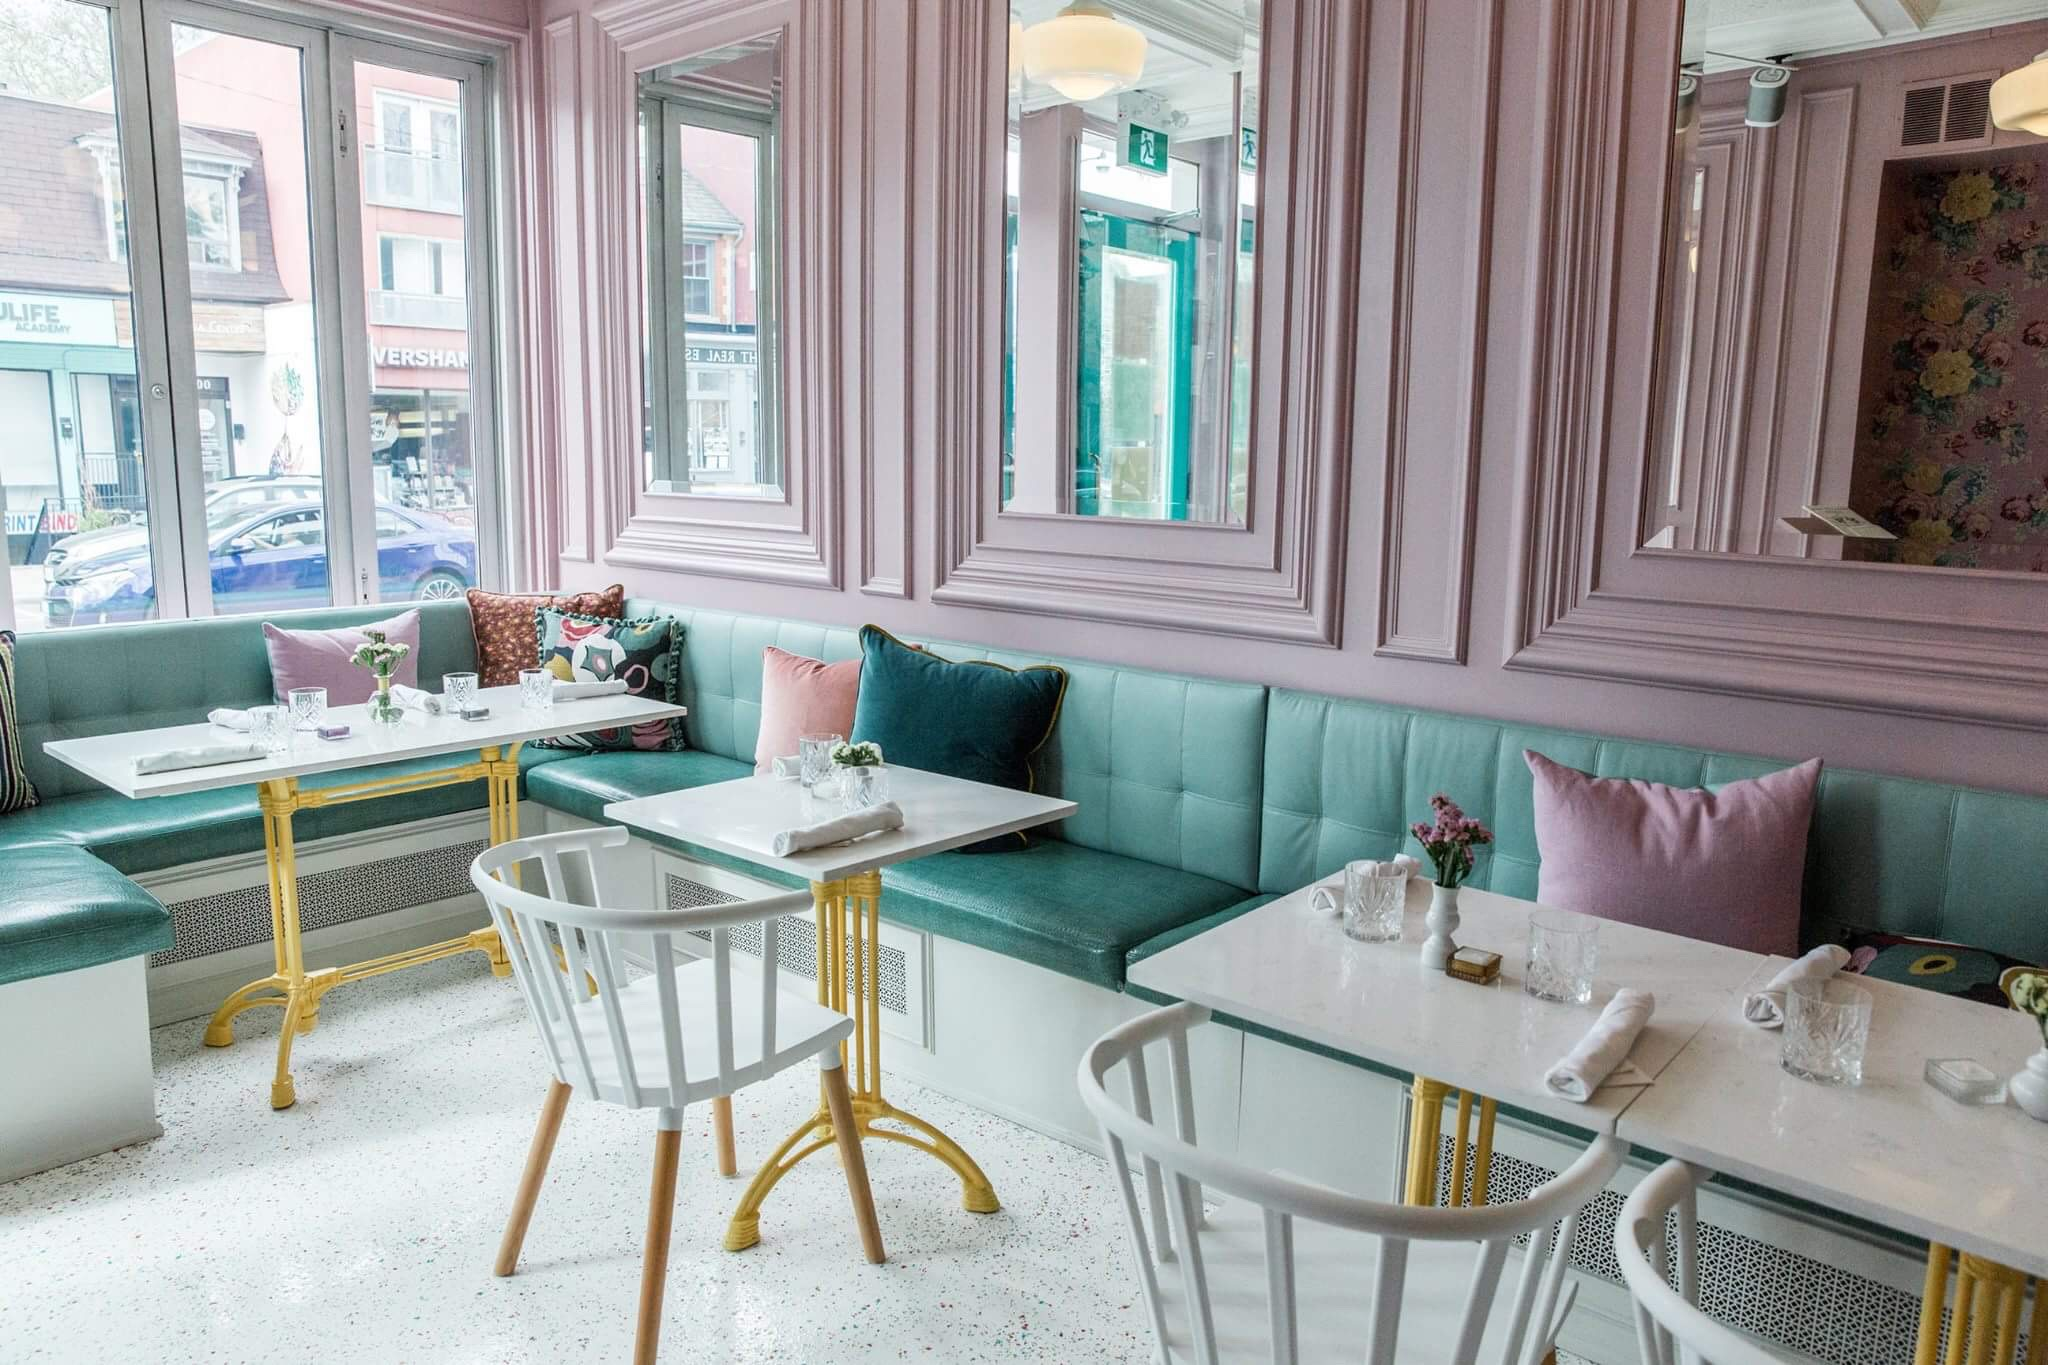 Pastel pink and green interior at the Cafe Cancan restaurant.